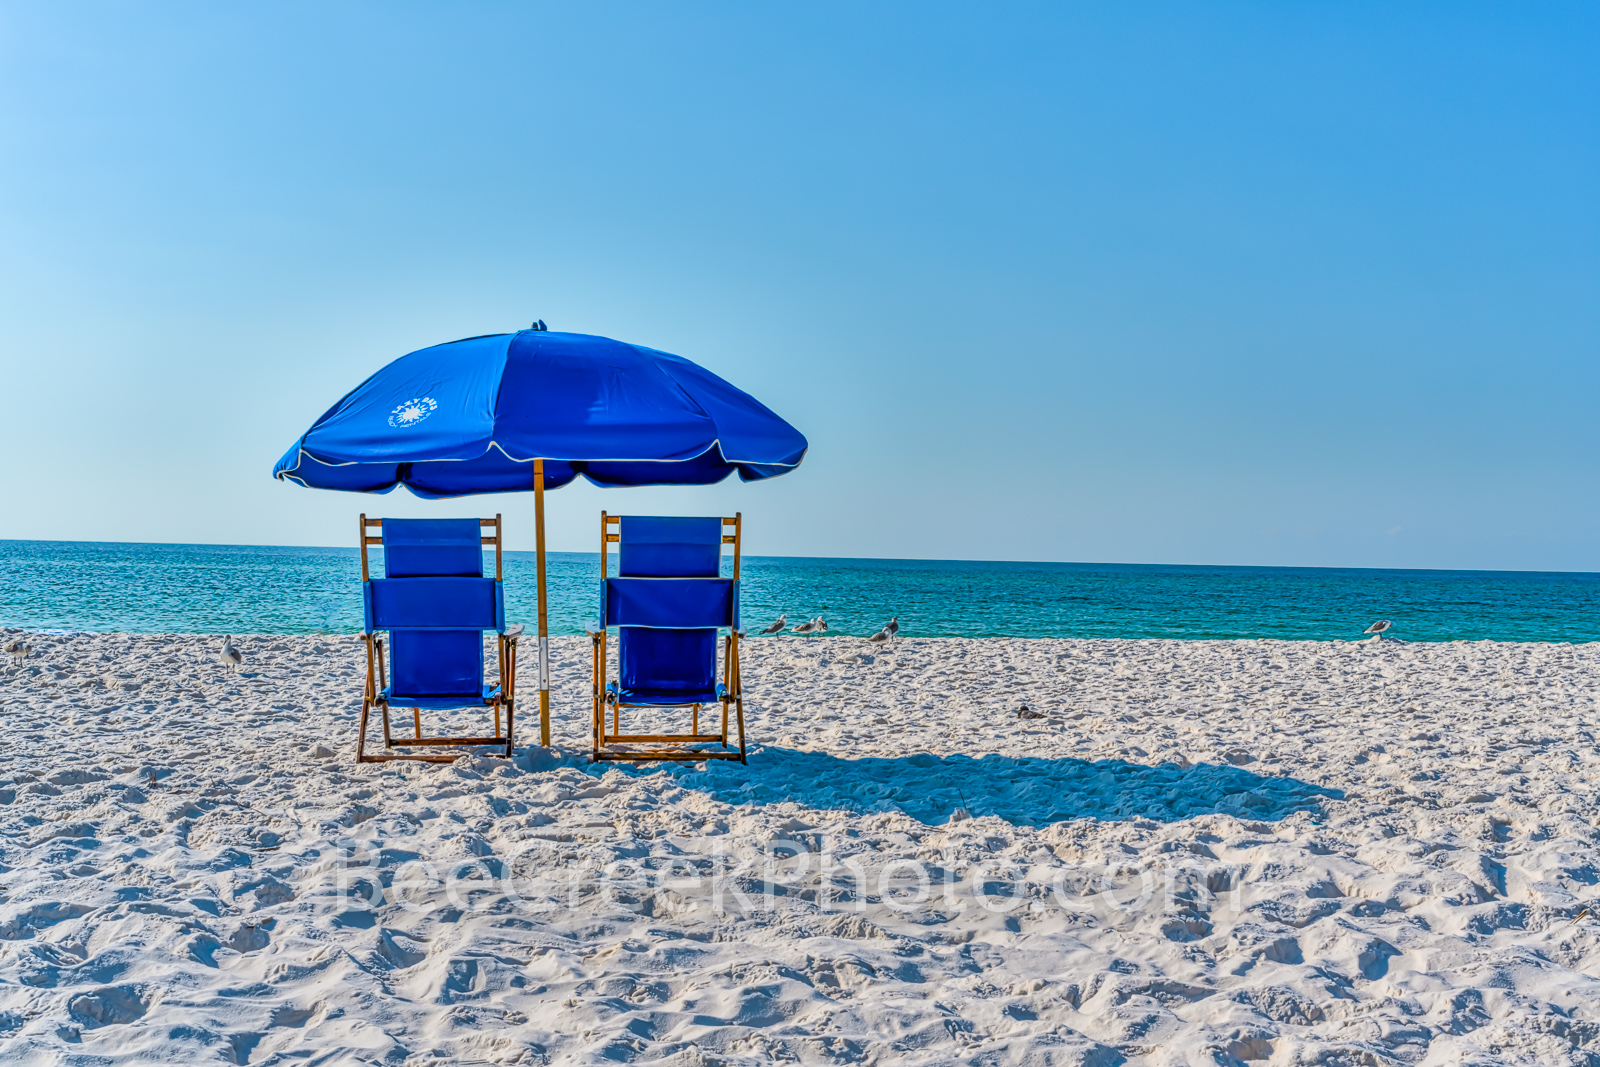 Beach Serenity - We loved the blue beach umbrella and chairs with only white sand the gulf and seagulls is says to chiling with...